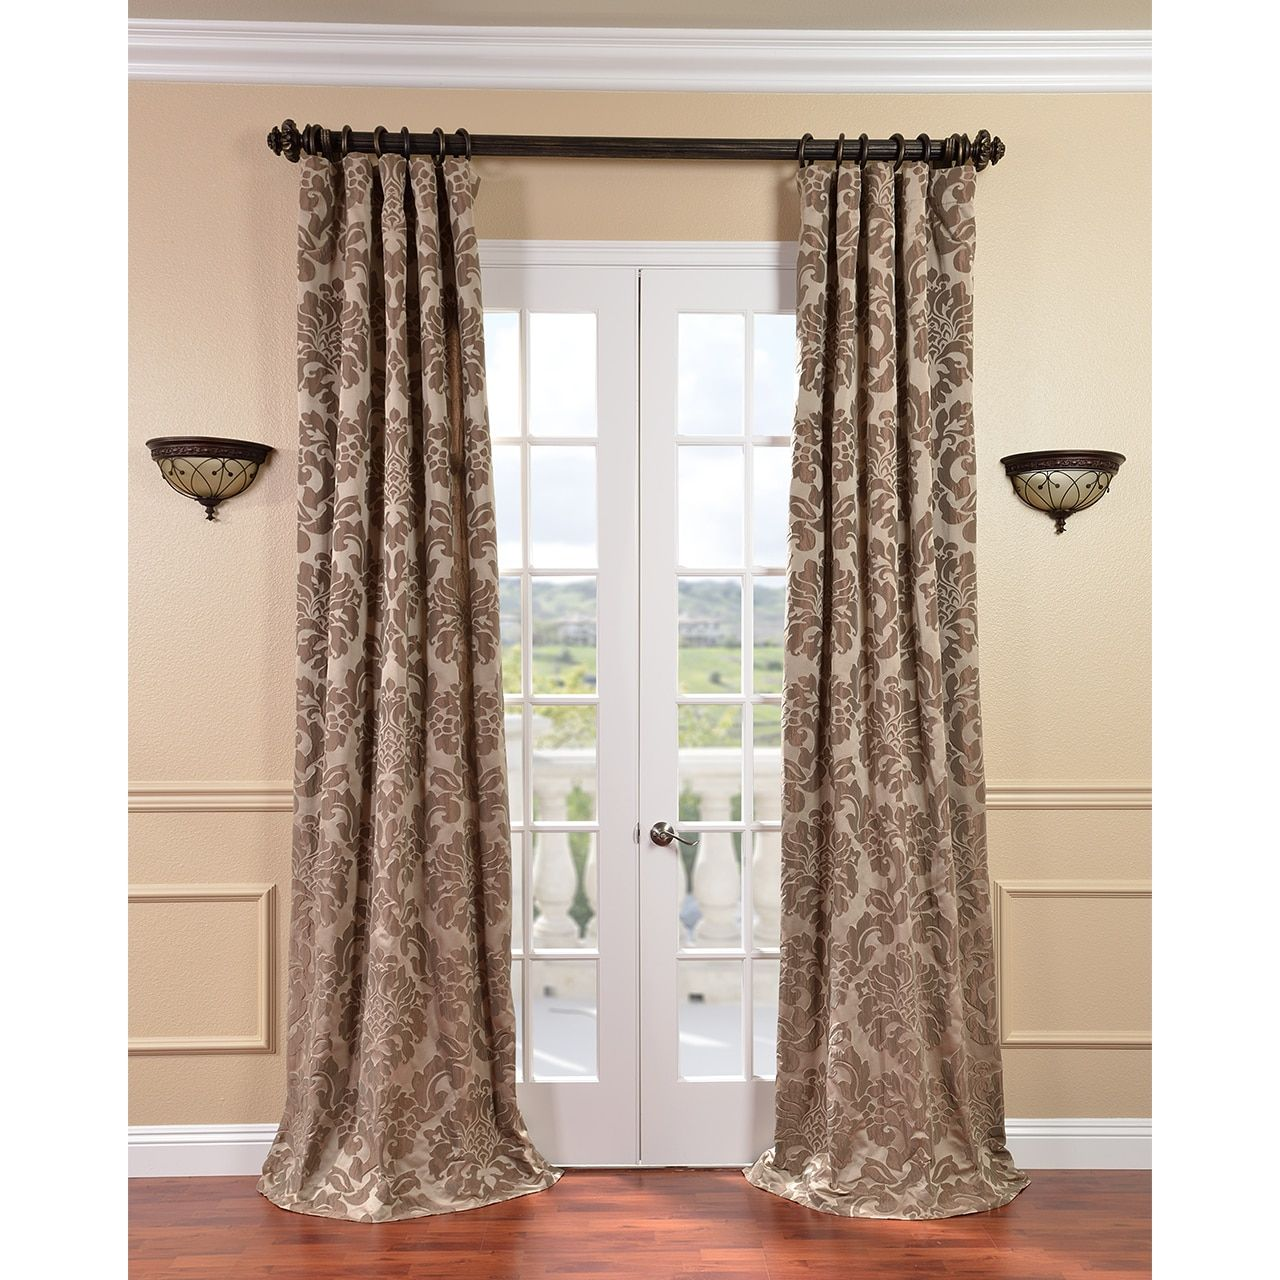 Overstock Com Online Shopping Bedding Furniture Electronics Jewelry Clothing More Half Price Drapes Drapes Curtains Curtains